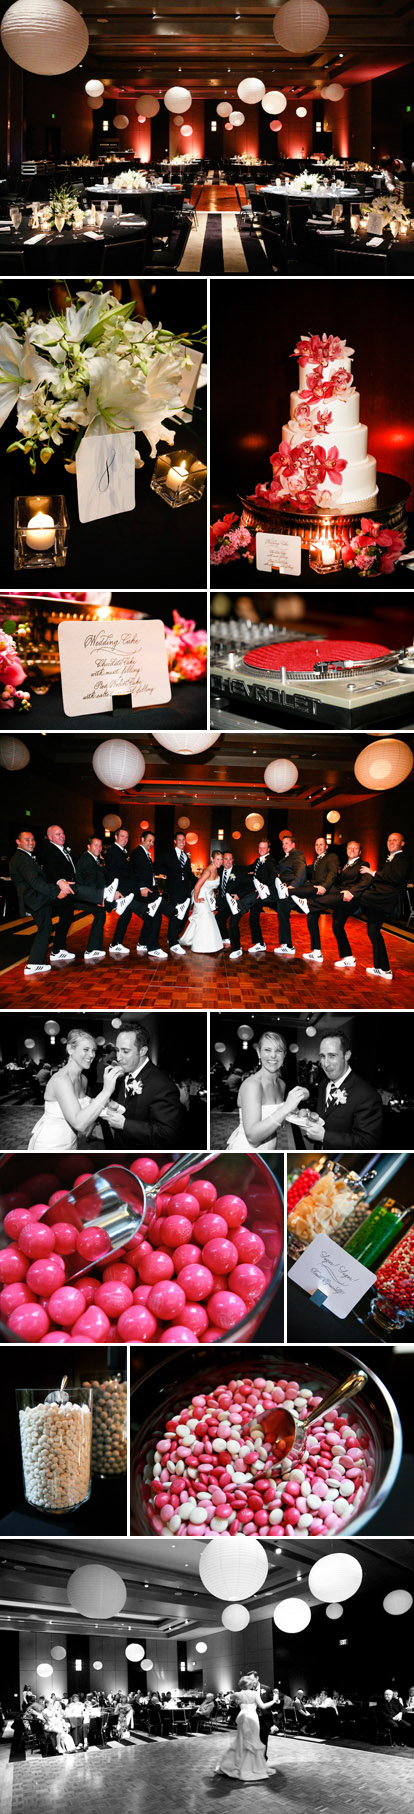 Modern, sophisticated, fun wedding reception at the W Hotel in Seattle, fuchsia, blue and white wedding color palette, images by One Thousand Words Photography